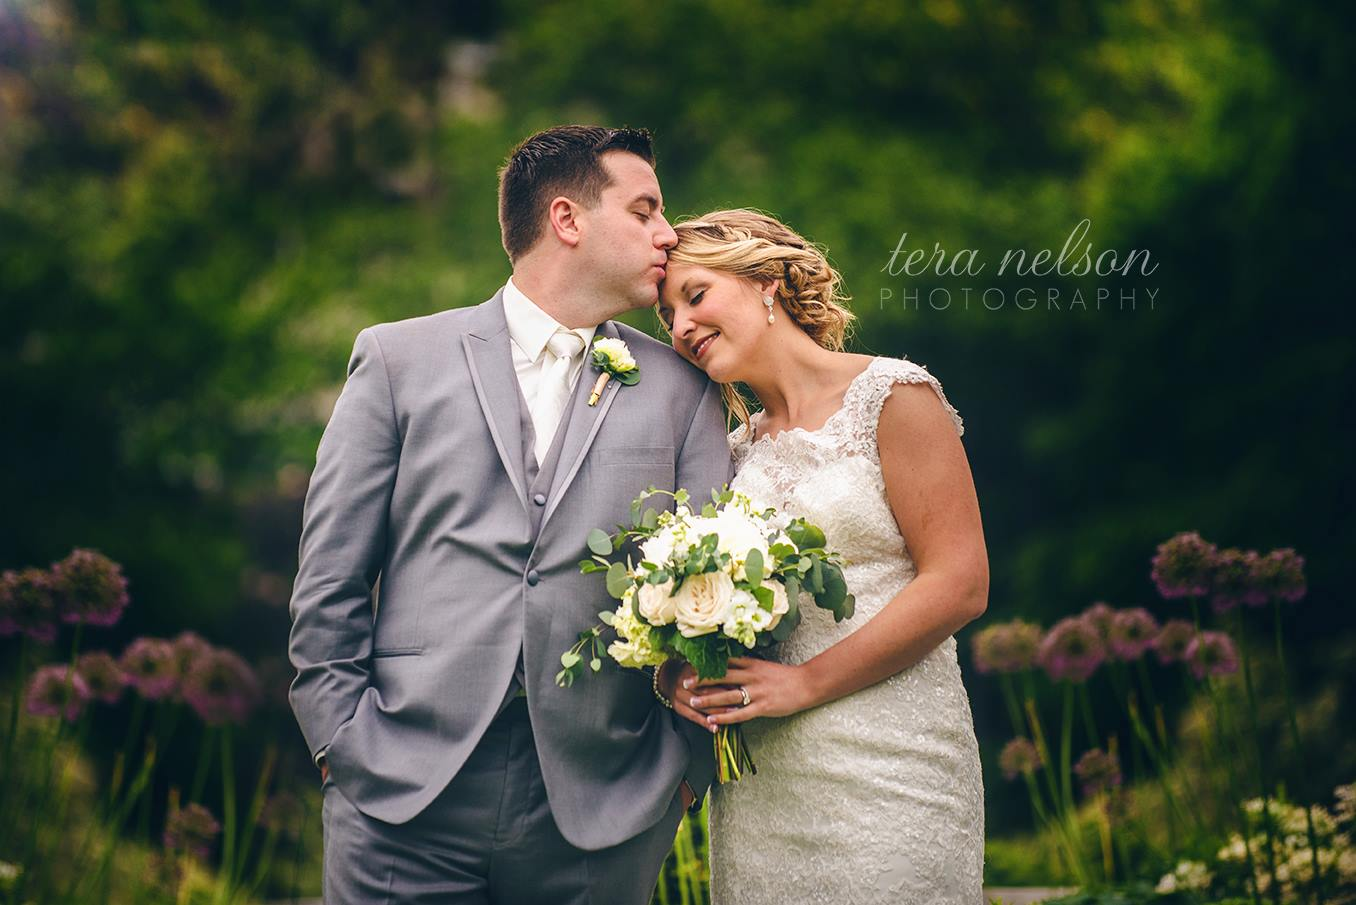 Tera Nelson Photography General Potter Farm Wedding Photographer